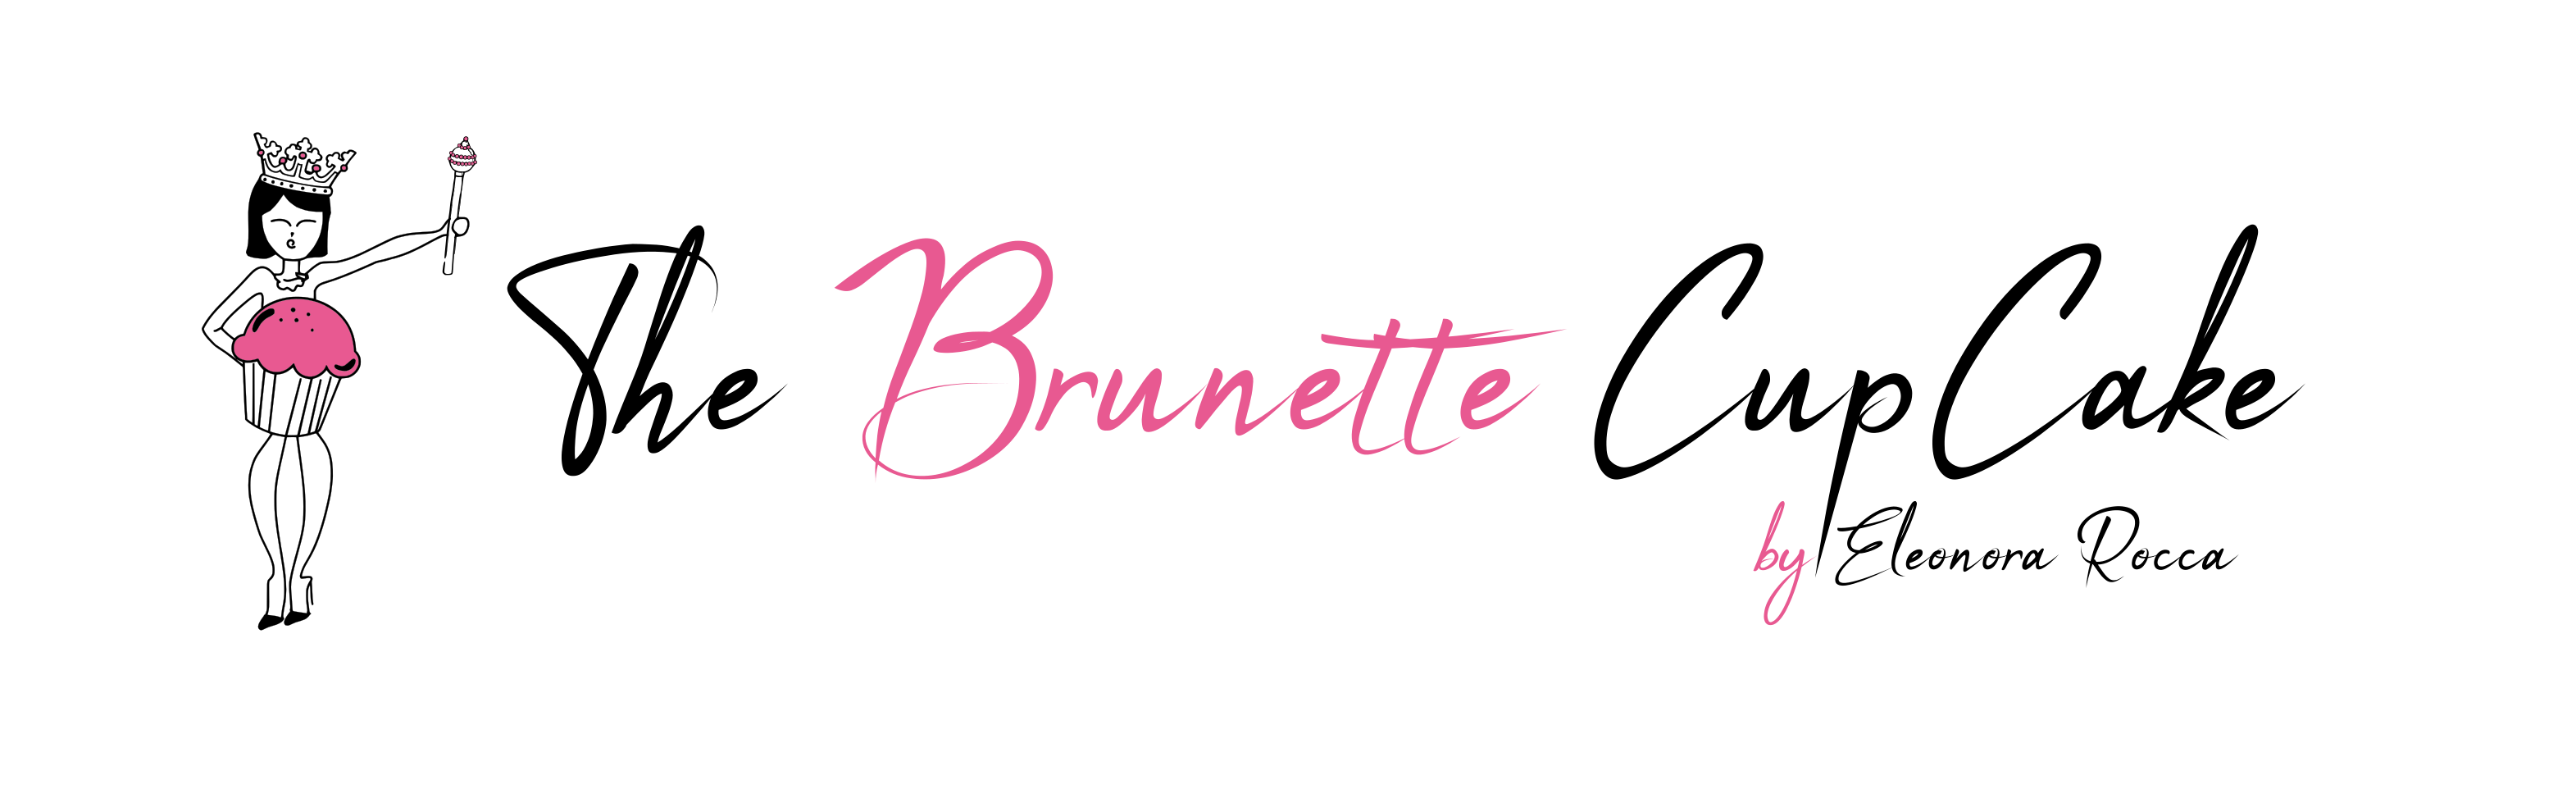 The Brunette Cupcake – by Eleonora Rocca